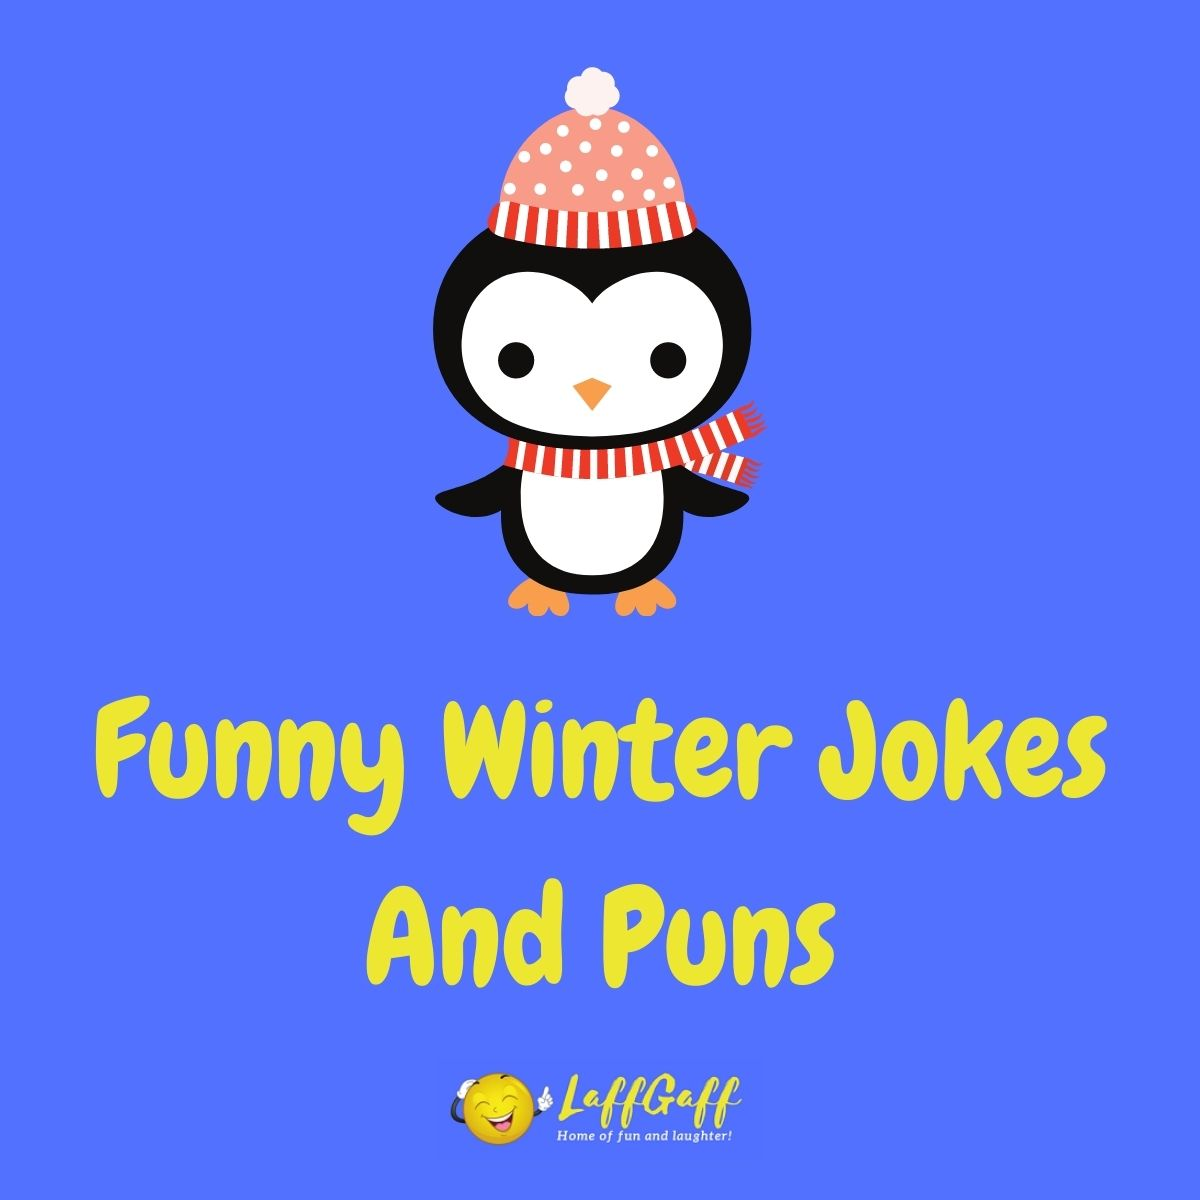 Featured image for a page of funny winter jokes and puns.